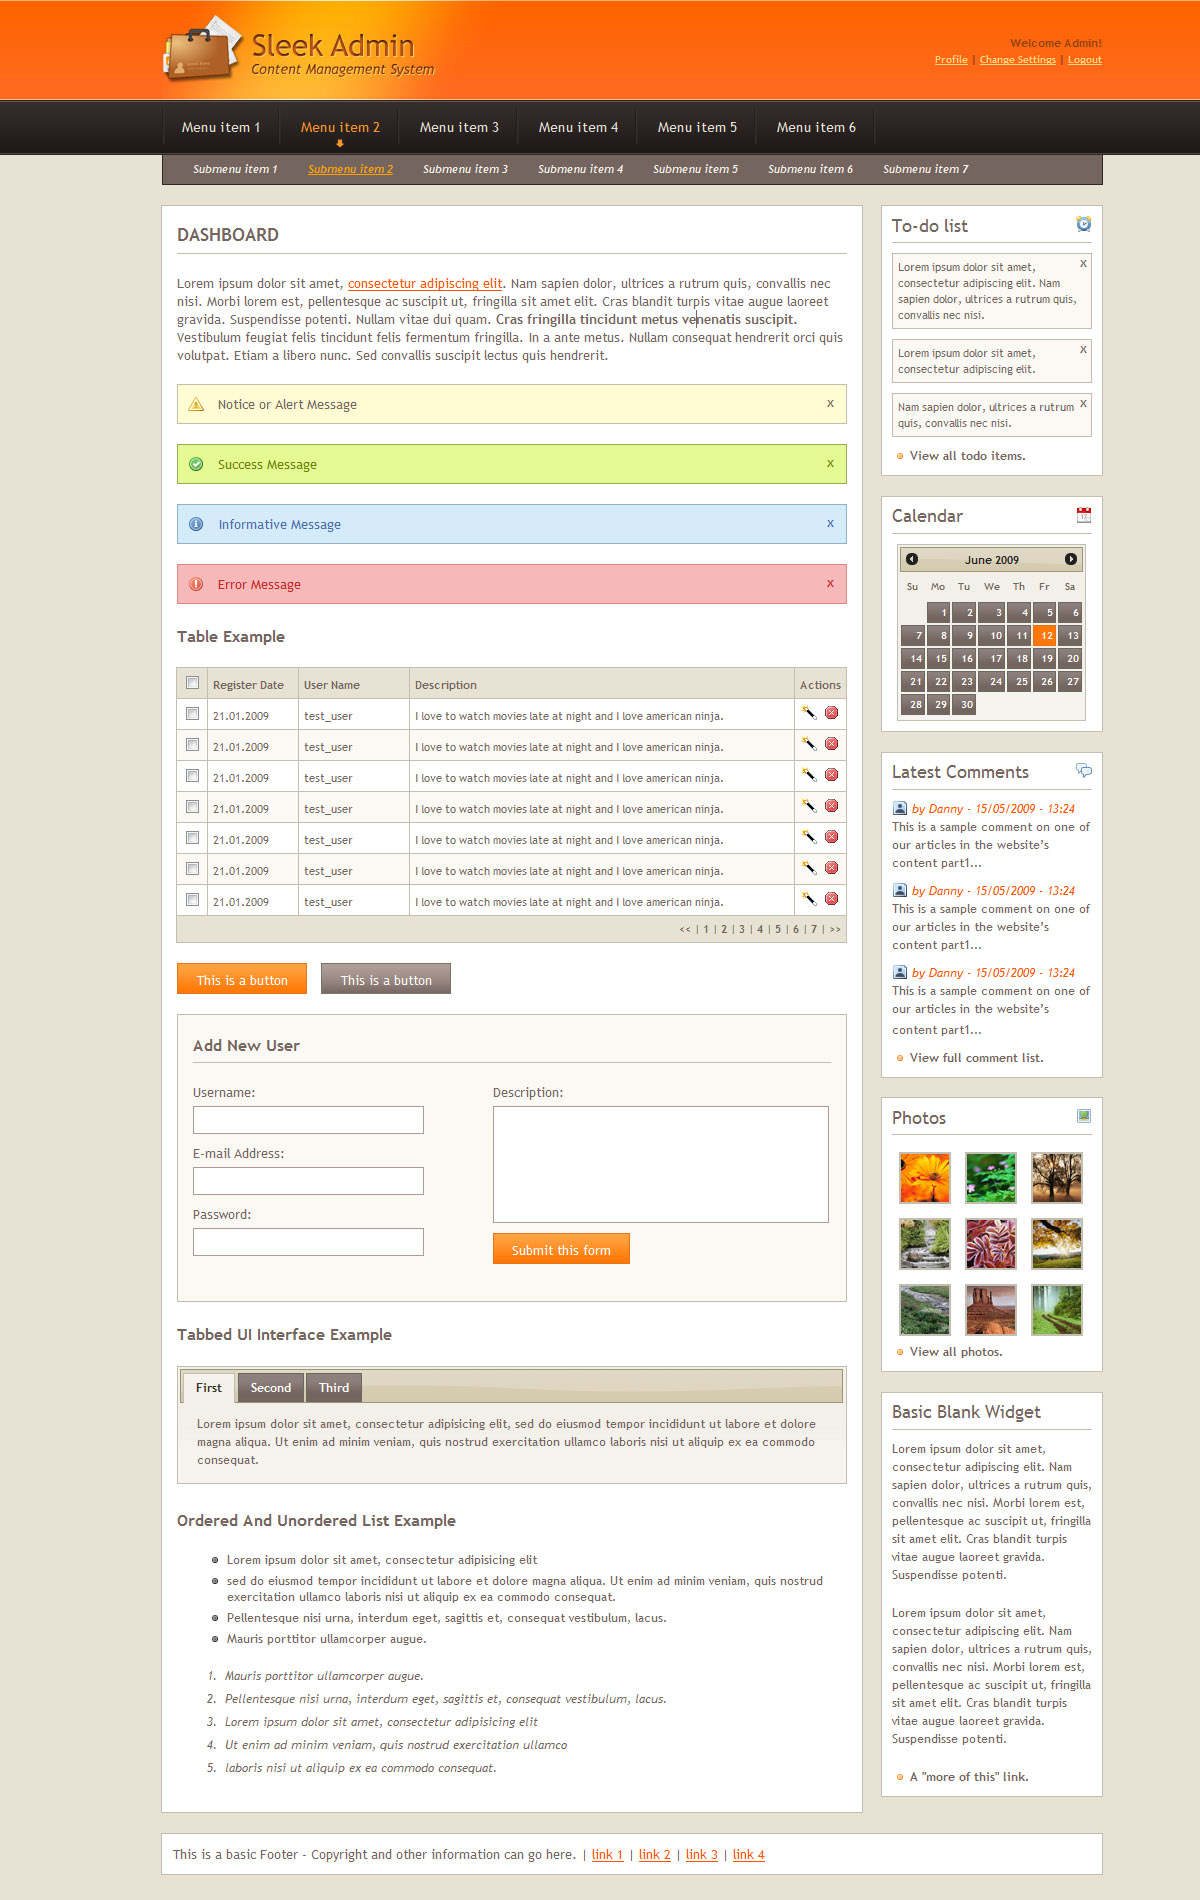 Sleek Admin Clean CSS Admin Skin - Orange Theme - Dashboard with all the layout elements